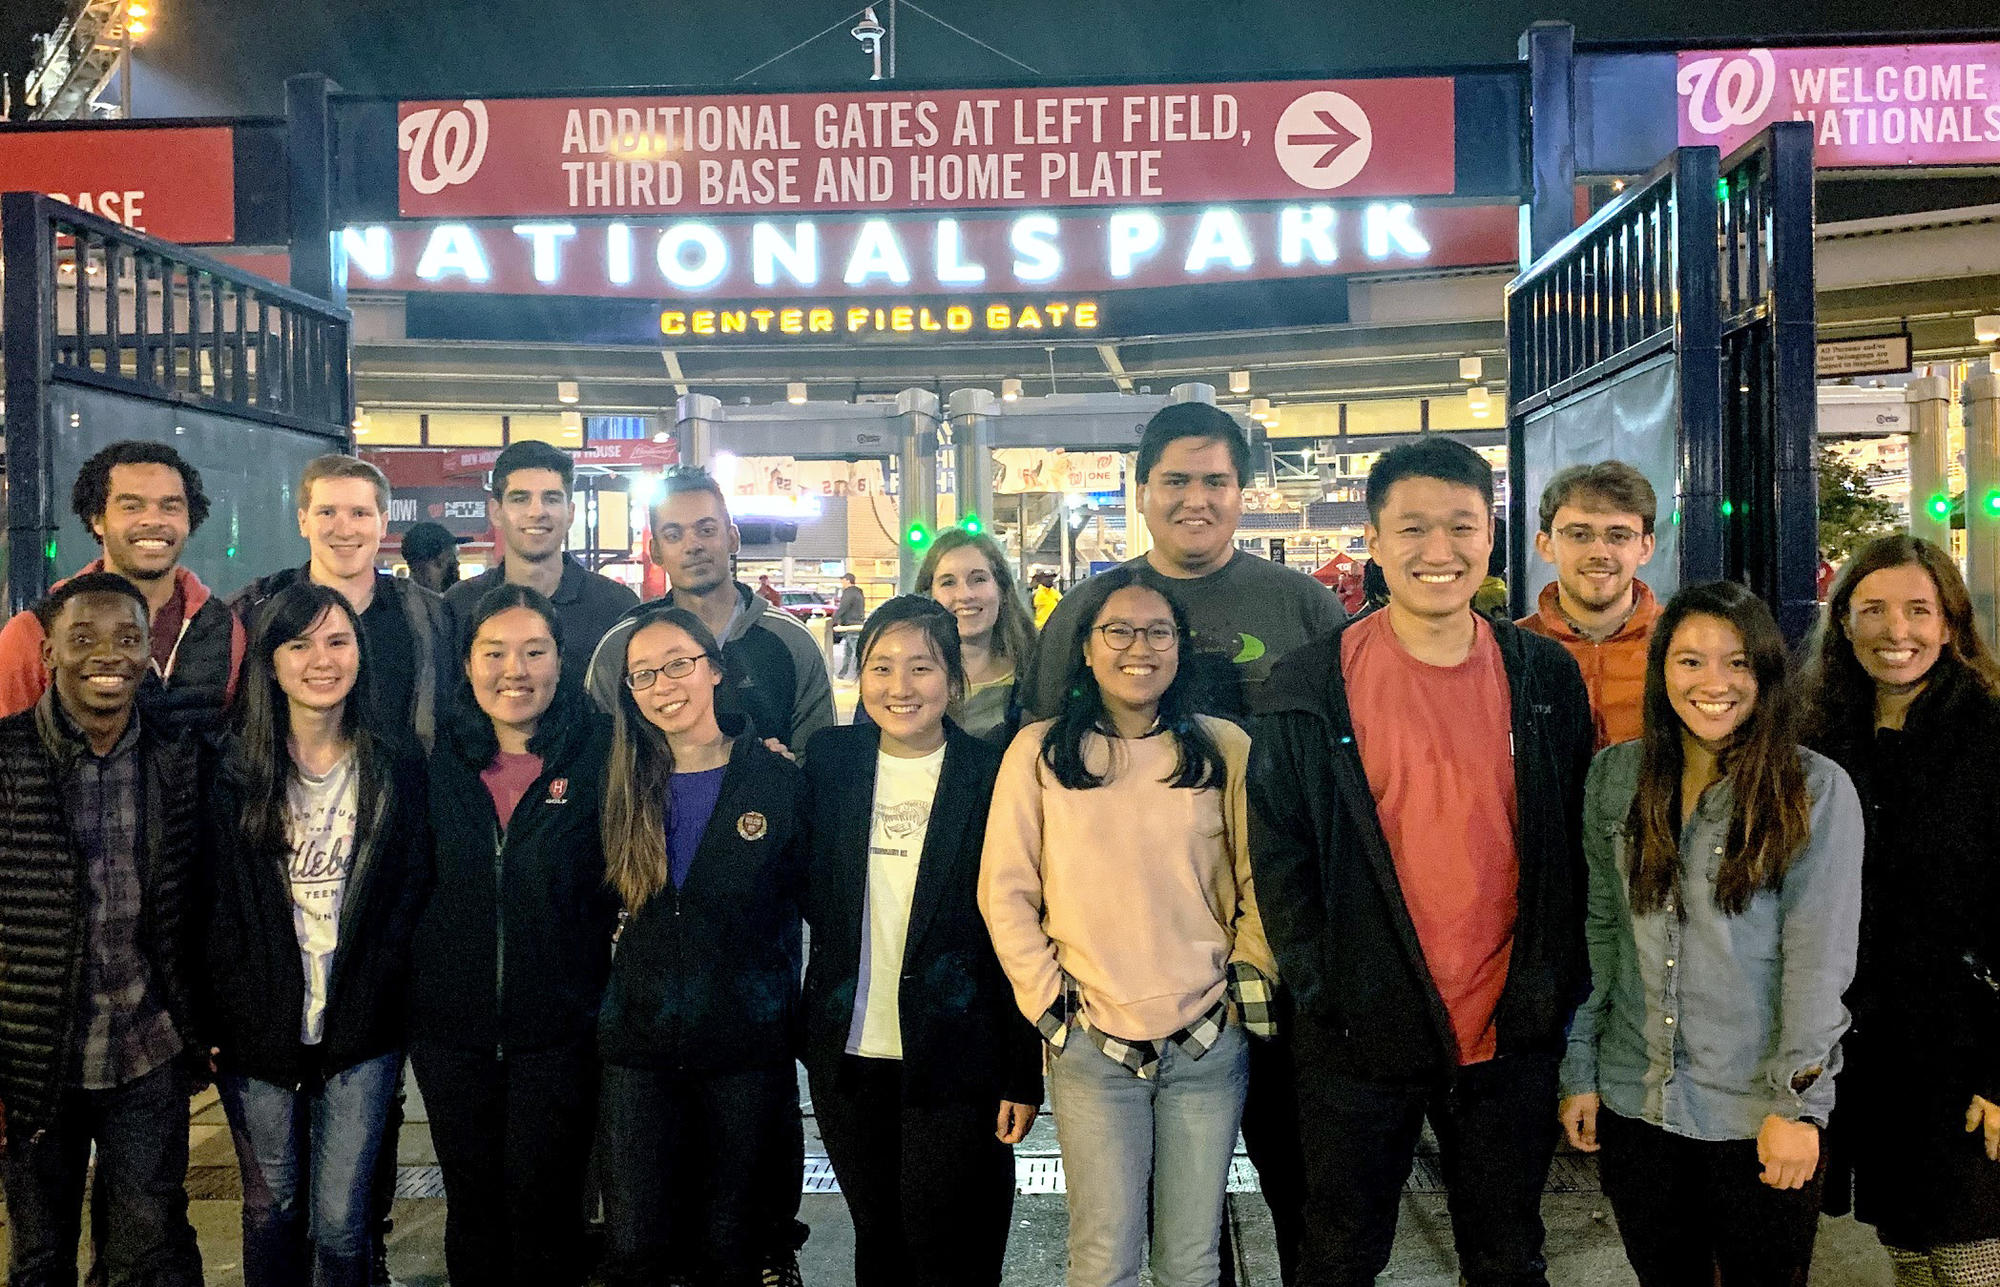 The whole group wears warm, casual clothes, standing outside bright lights advertising the Nationals baseball park at night. The group stayed nearby, but the Nationals were playing an away game in Houston.